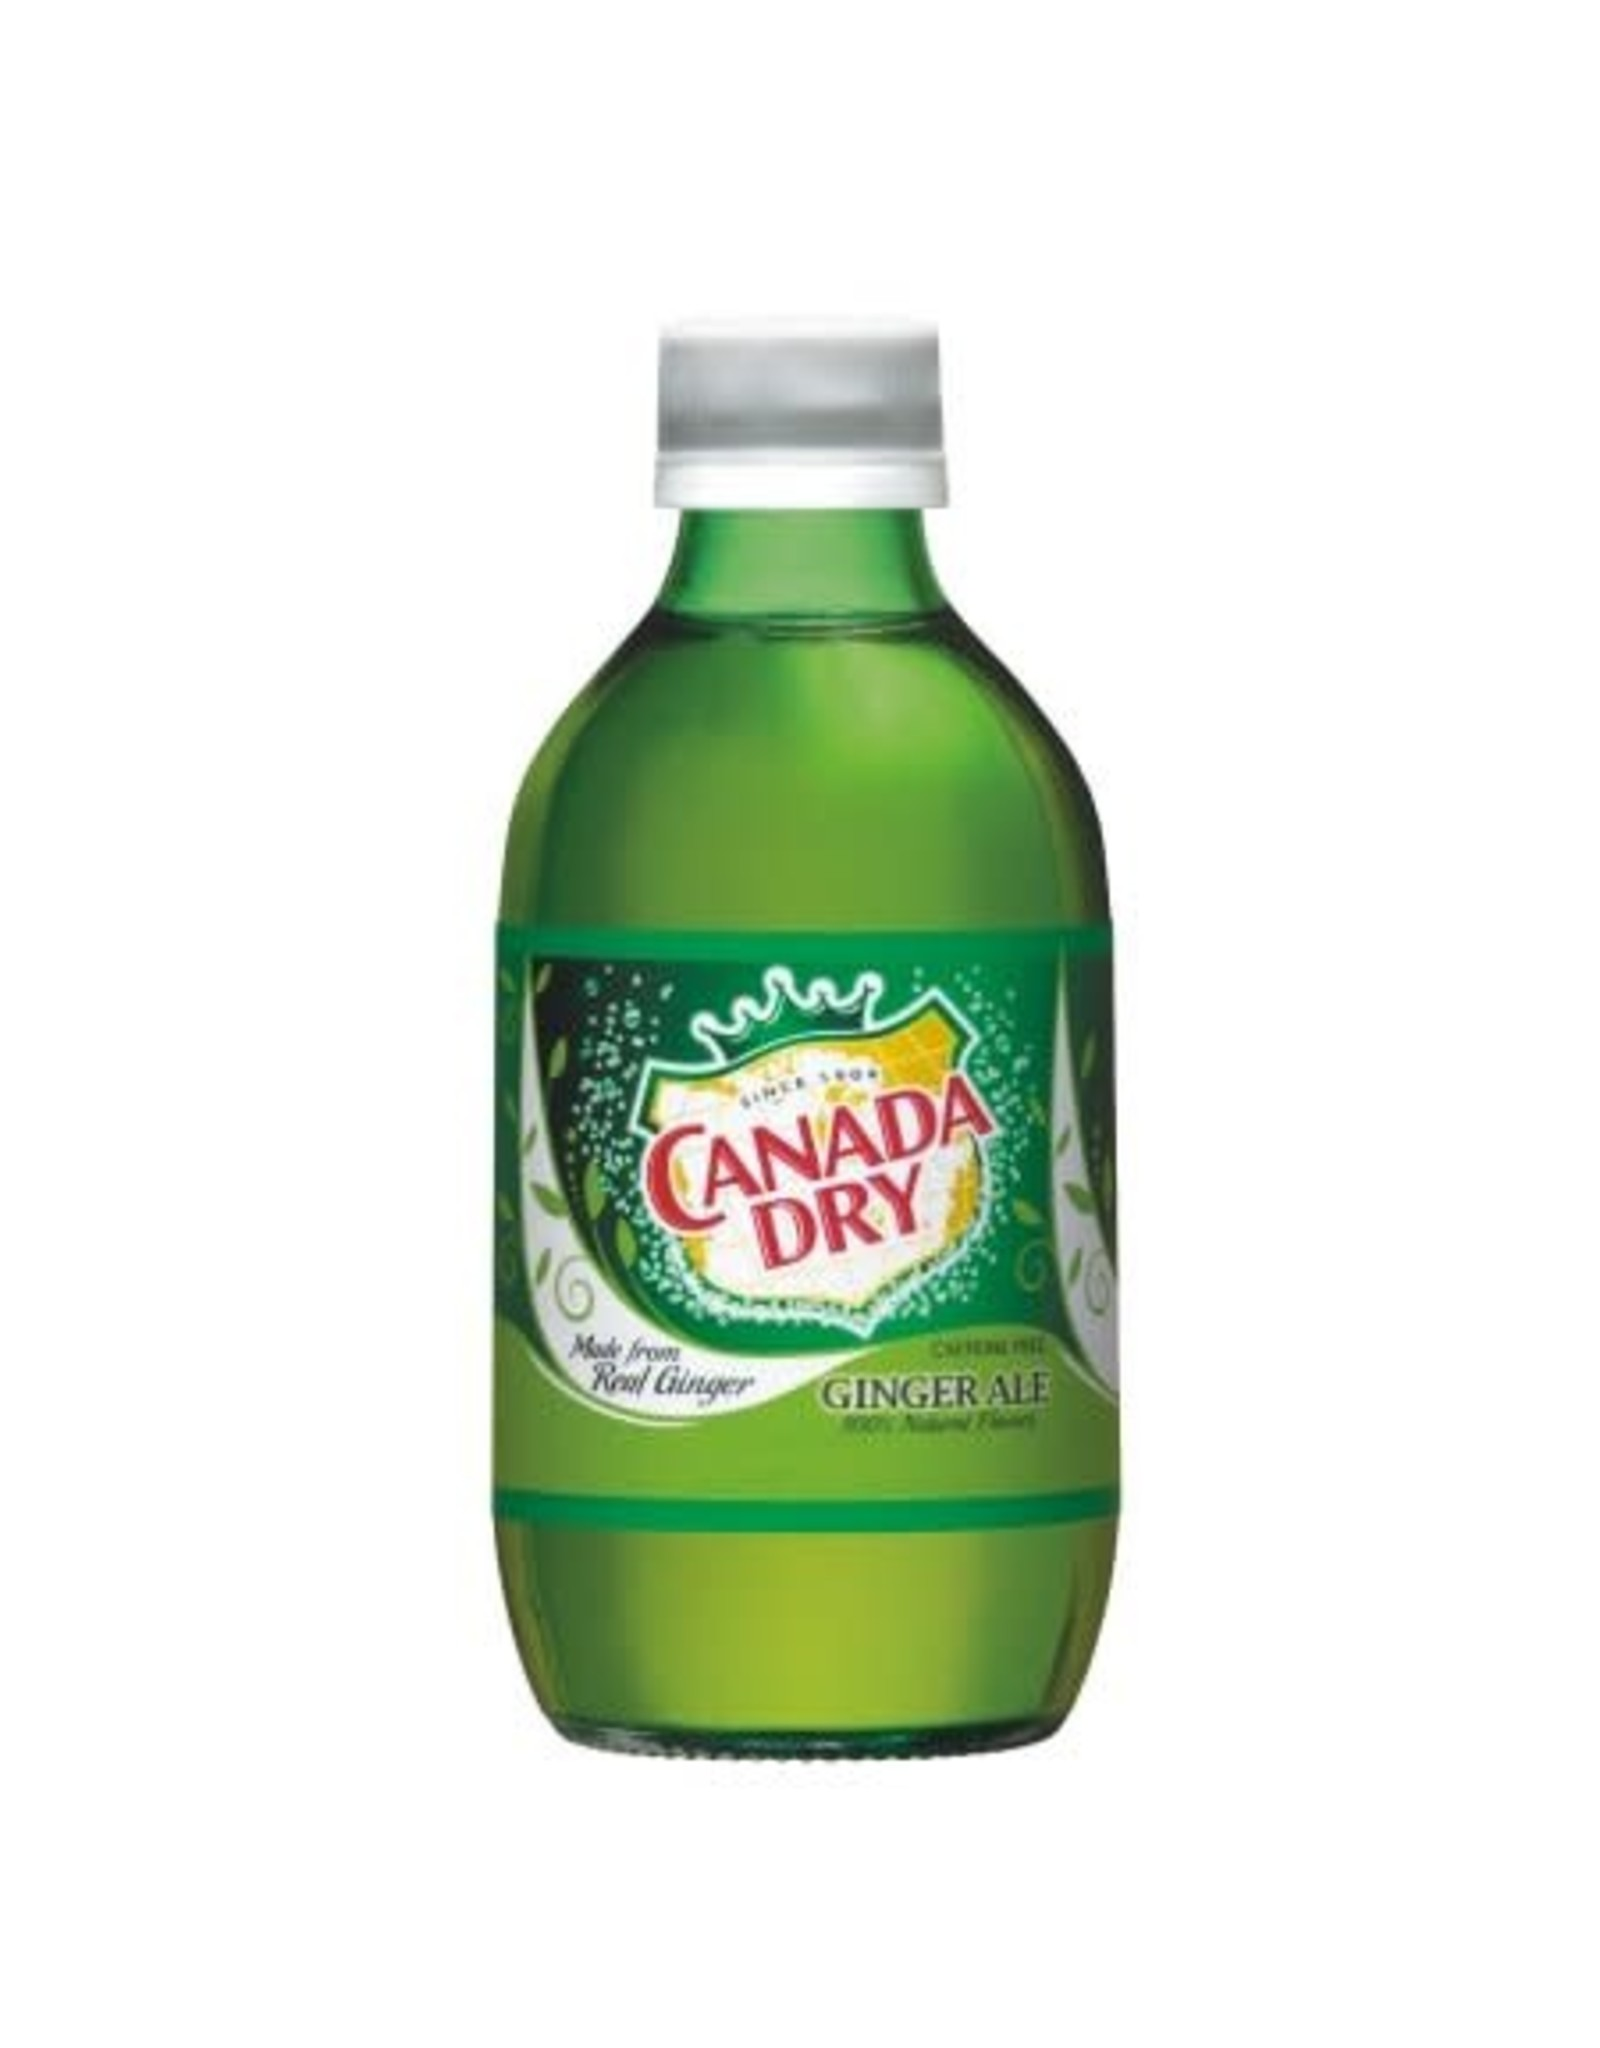 CANADA DRY GINGER ALE 10OZ